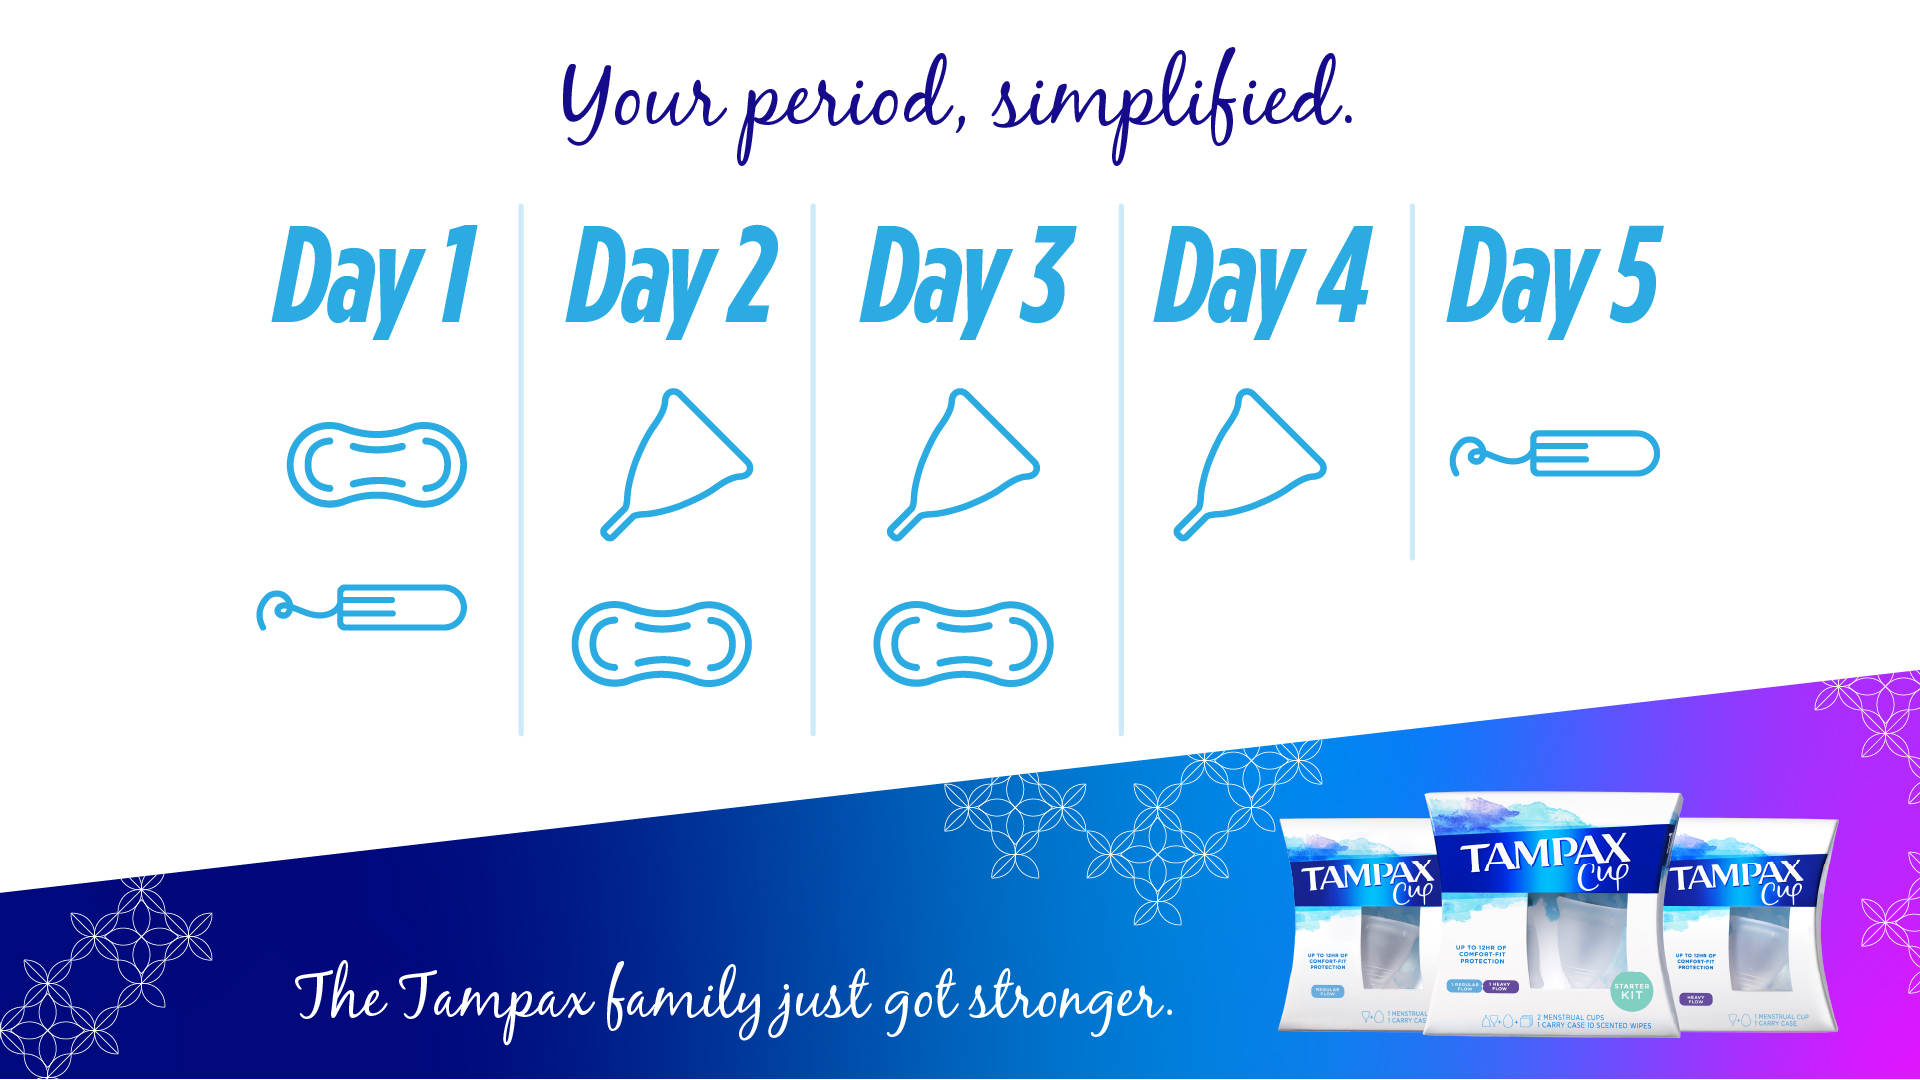 The Tampax family just got stronger. Your period, simplified